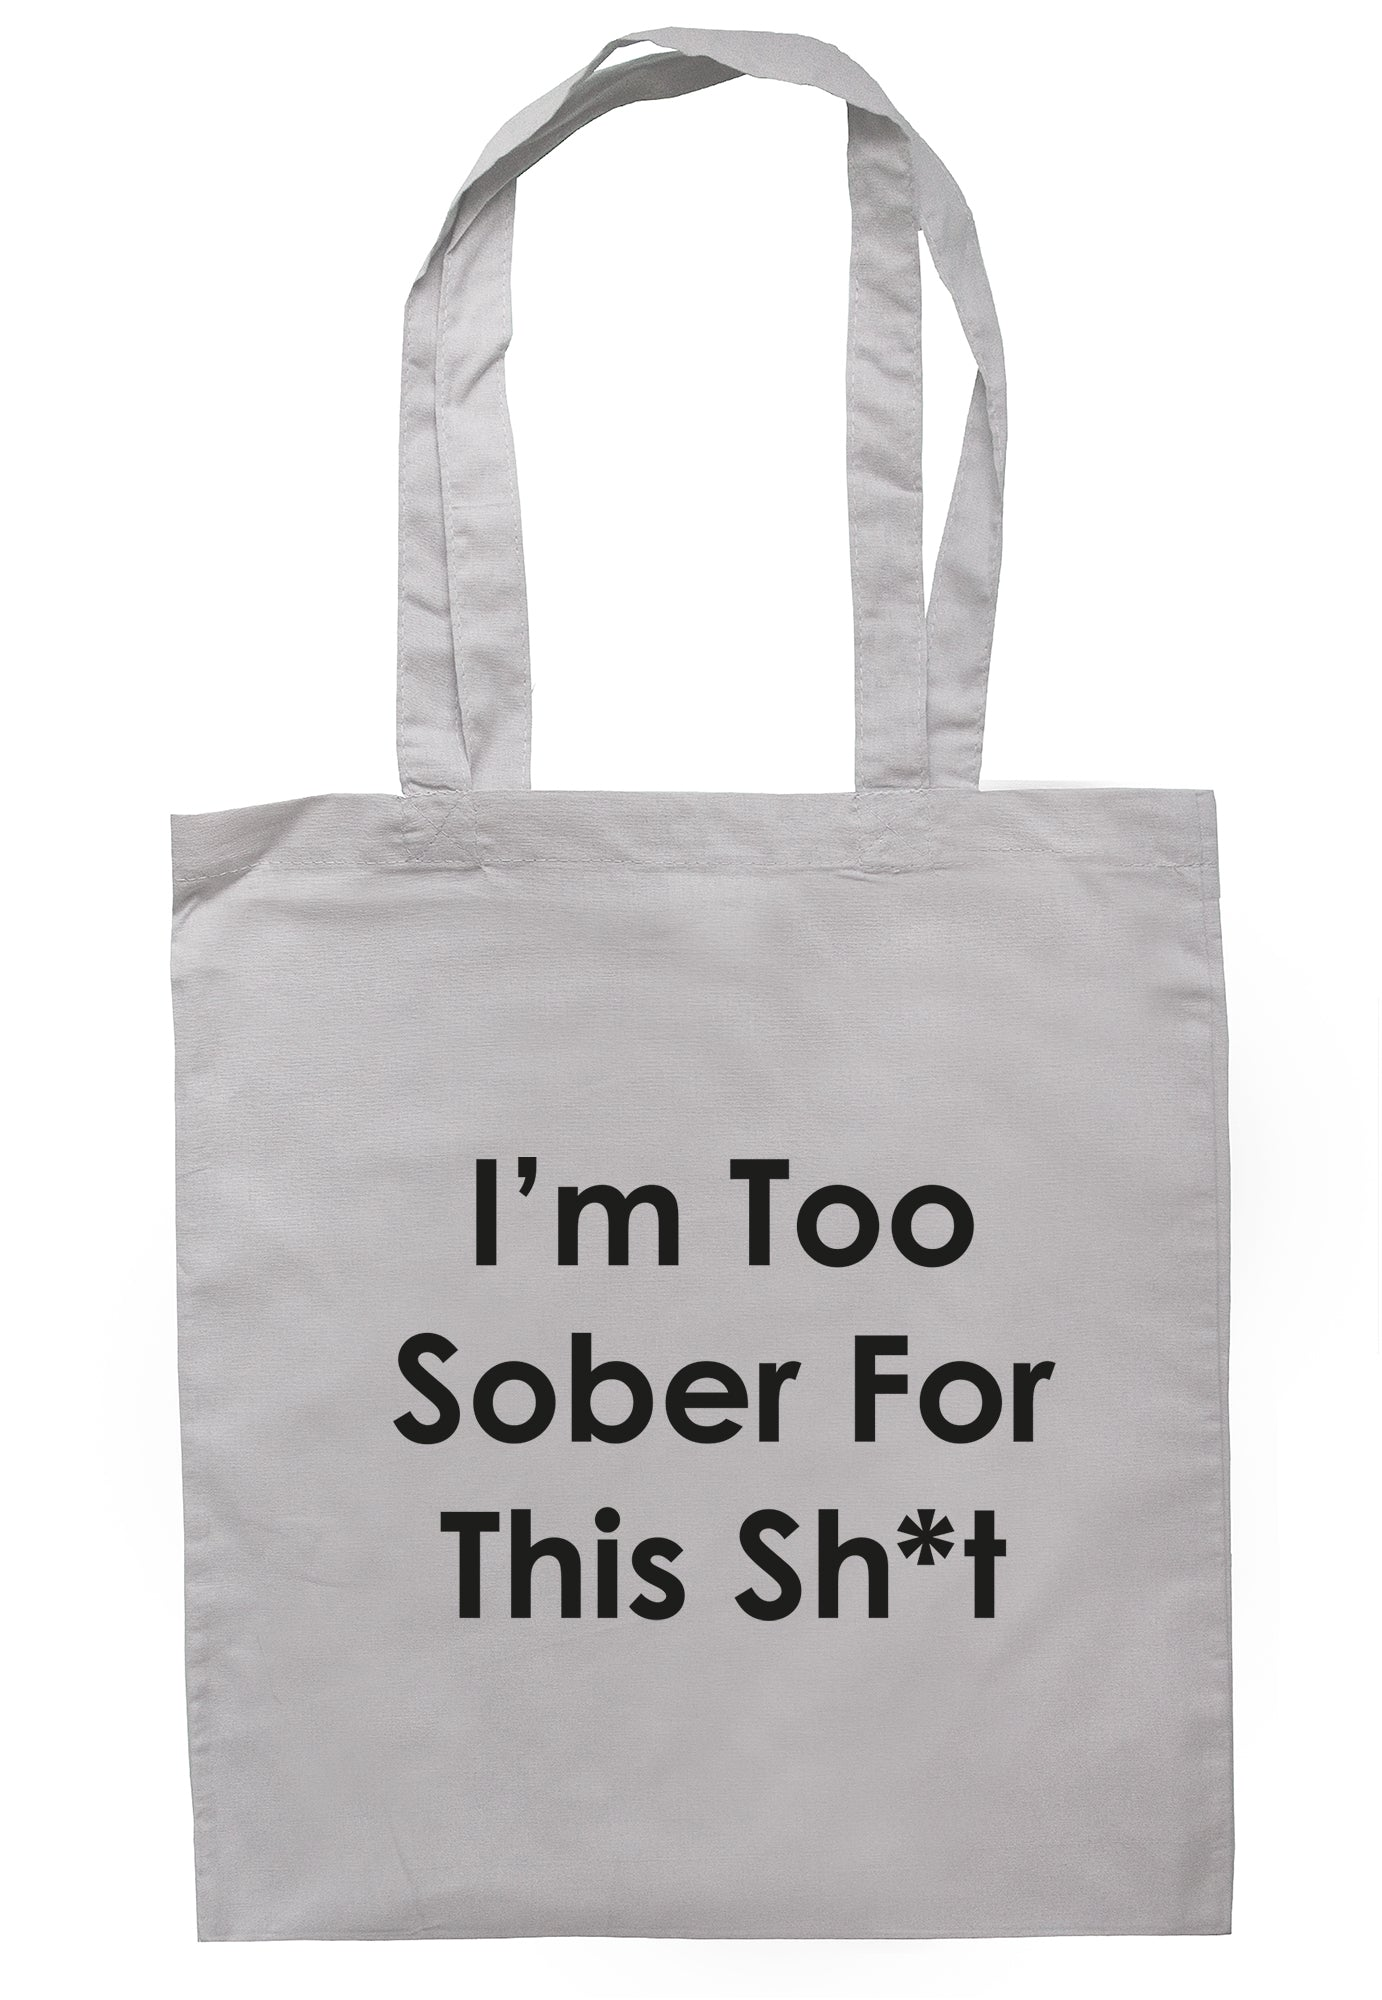 I'm Too Sober For This Sh*t Tote Bag TB1999 - Illustrated Identity Ltd.